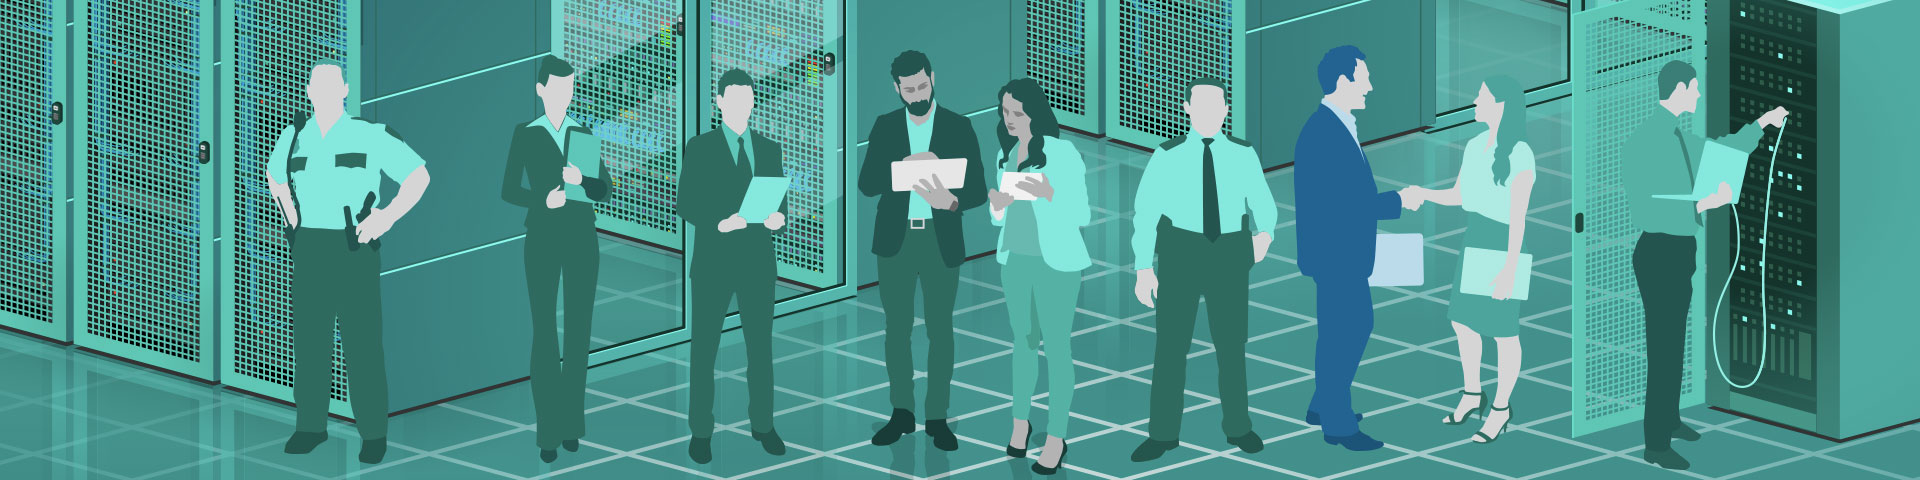 data centre people and experts